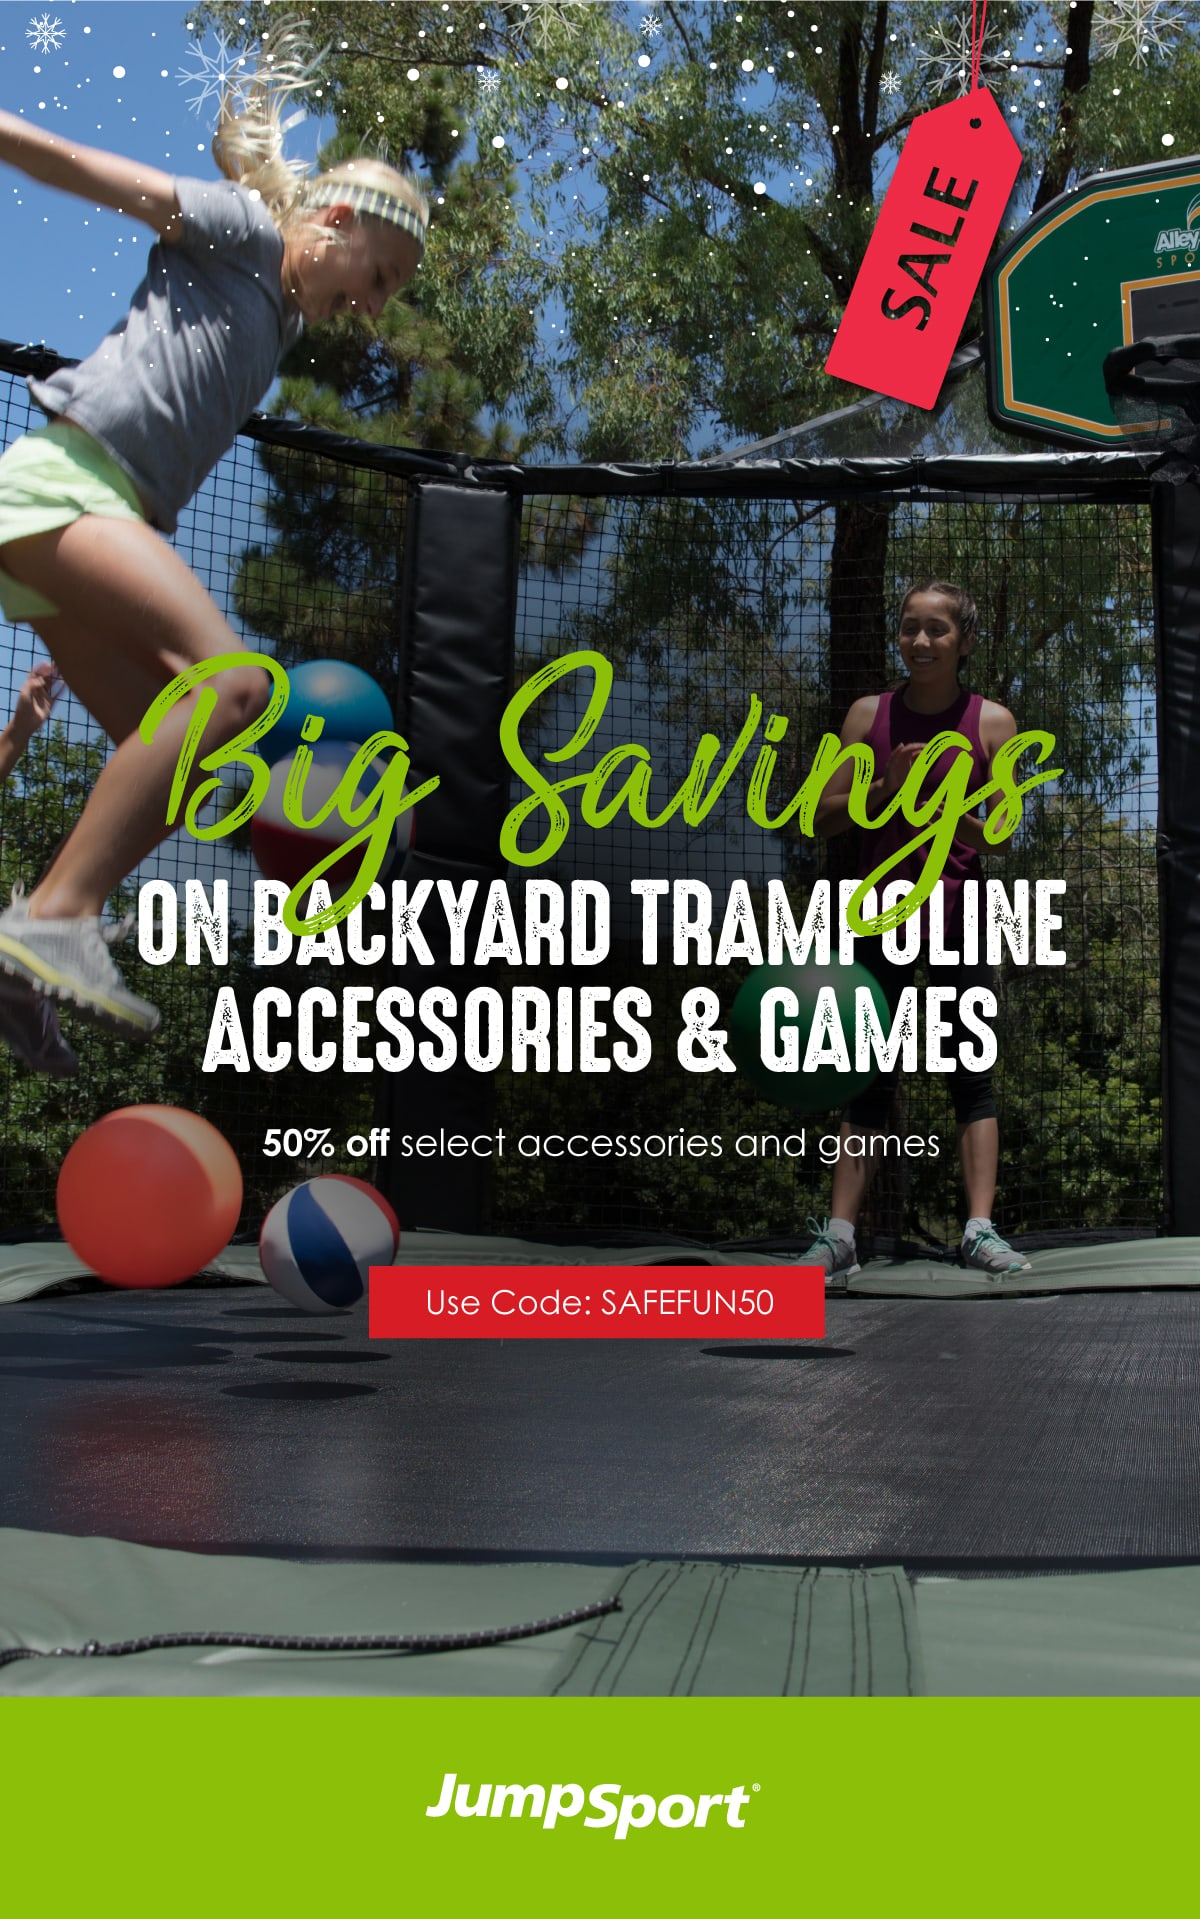 Big Savings on Backyard Trampoline Accessories & Games. 50% off select accessories and games. Use Code: SAFEFUN50